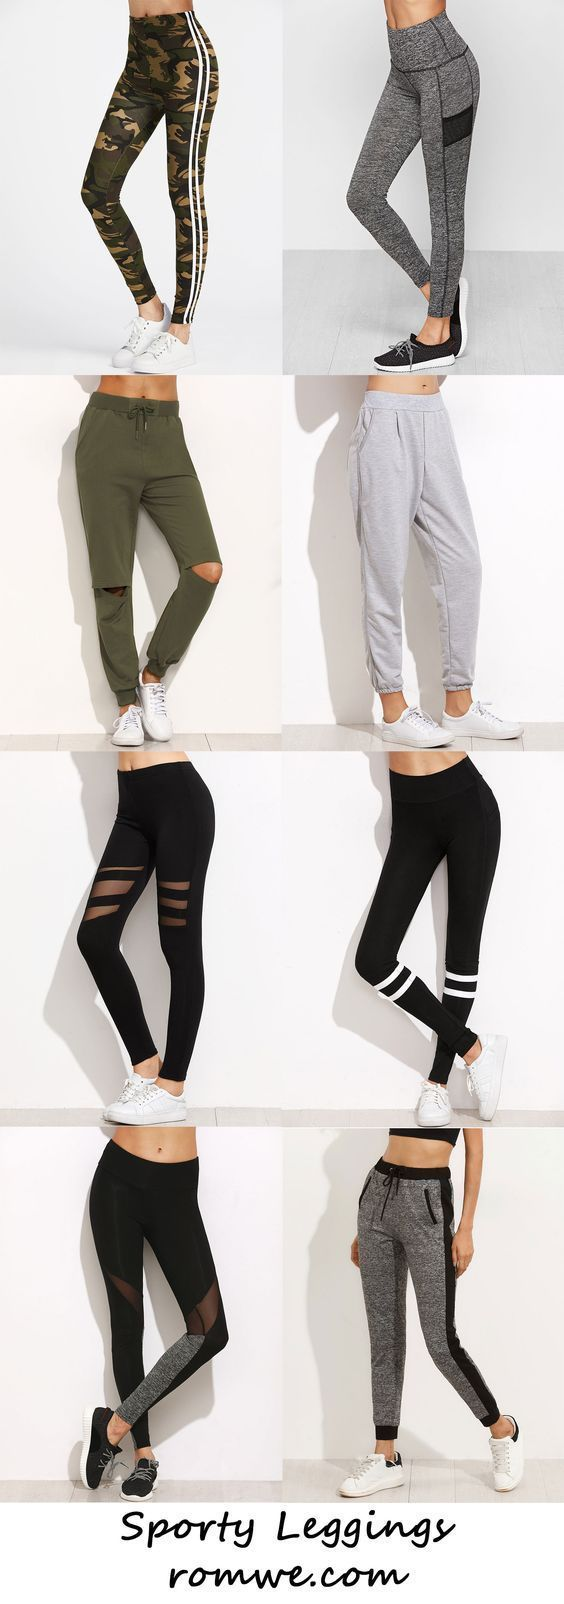 Leggings Sporty Leggings 2017 Romwe Com с - Sportlich Wohnzimmer